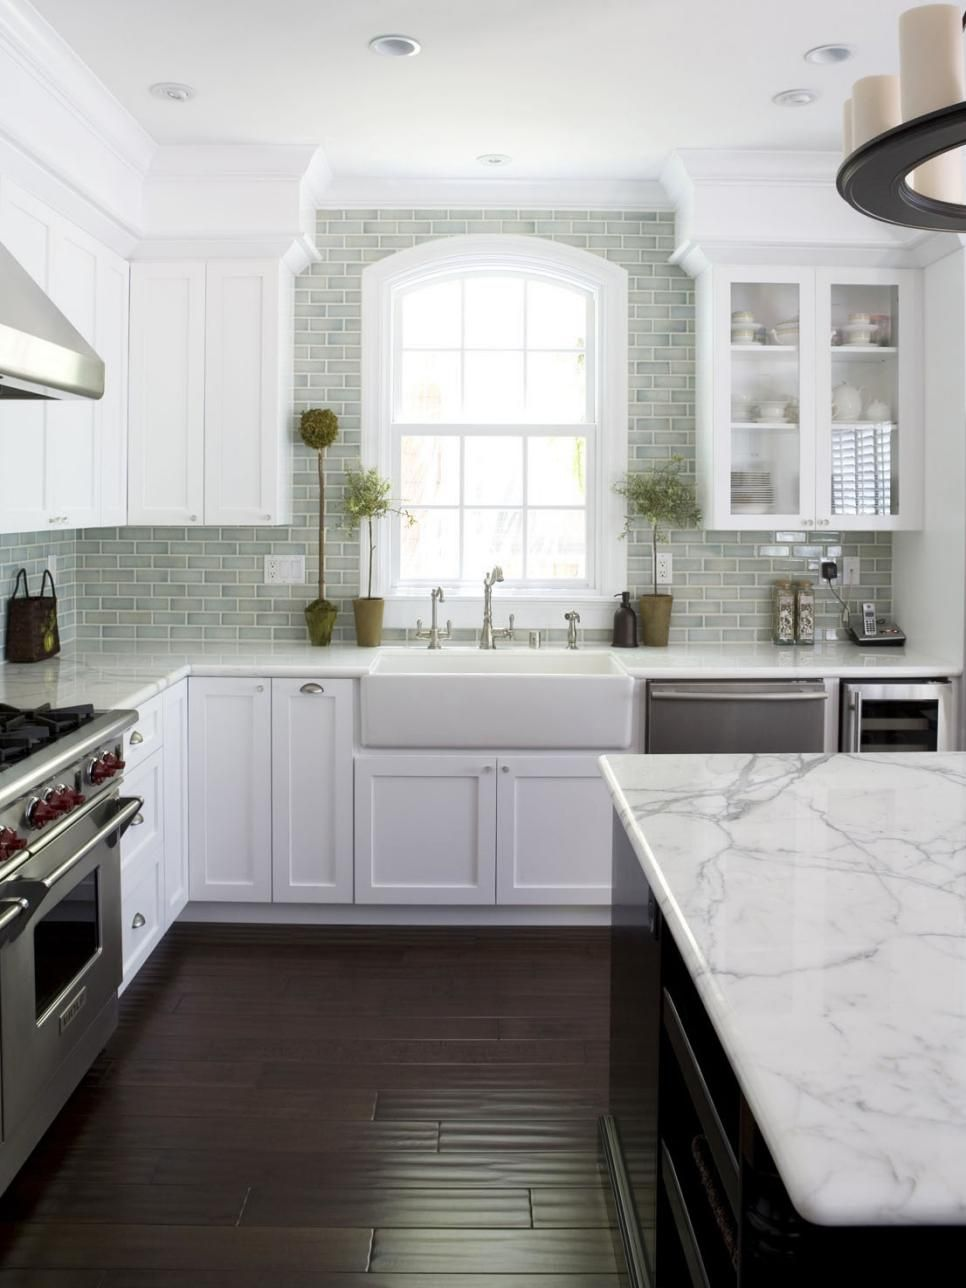 The Kitchen Decorating Experts At Hgtv Com Share 50 Traditional